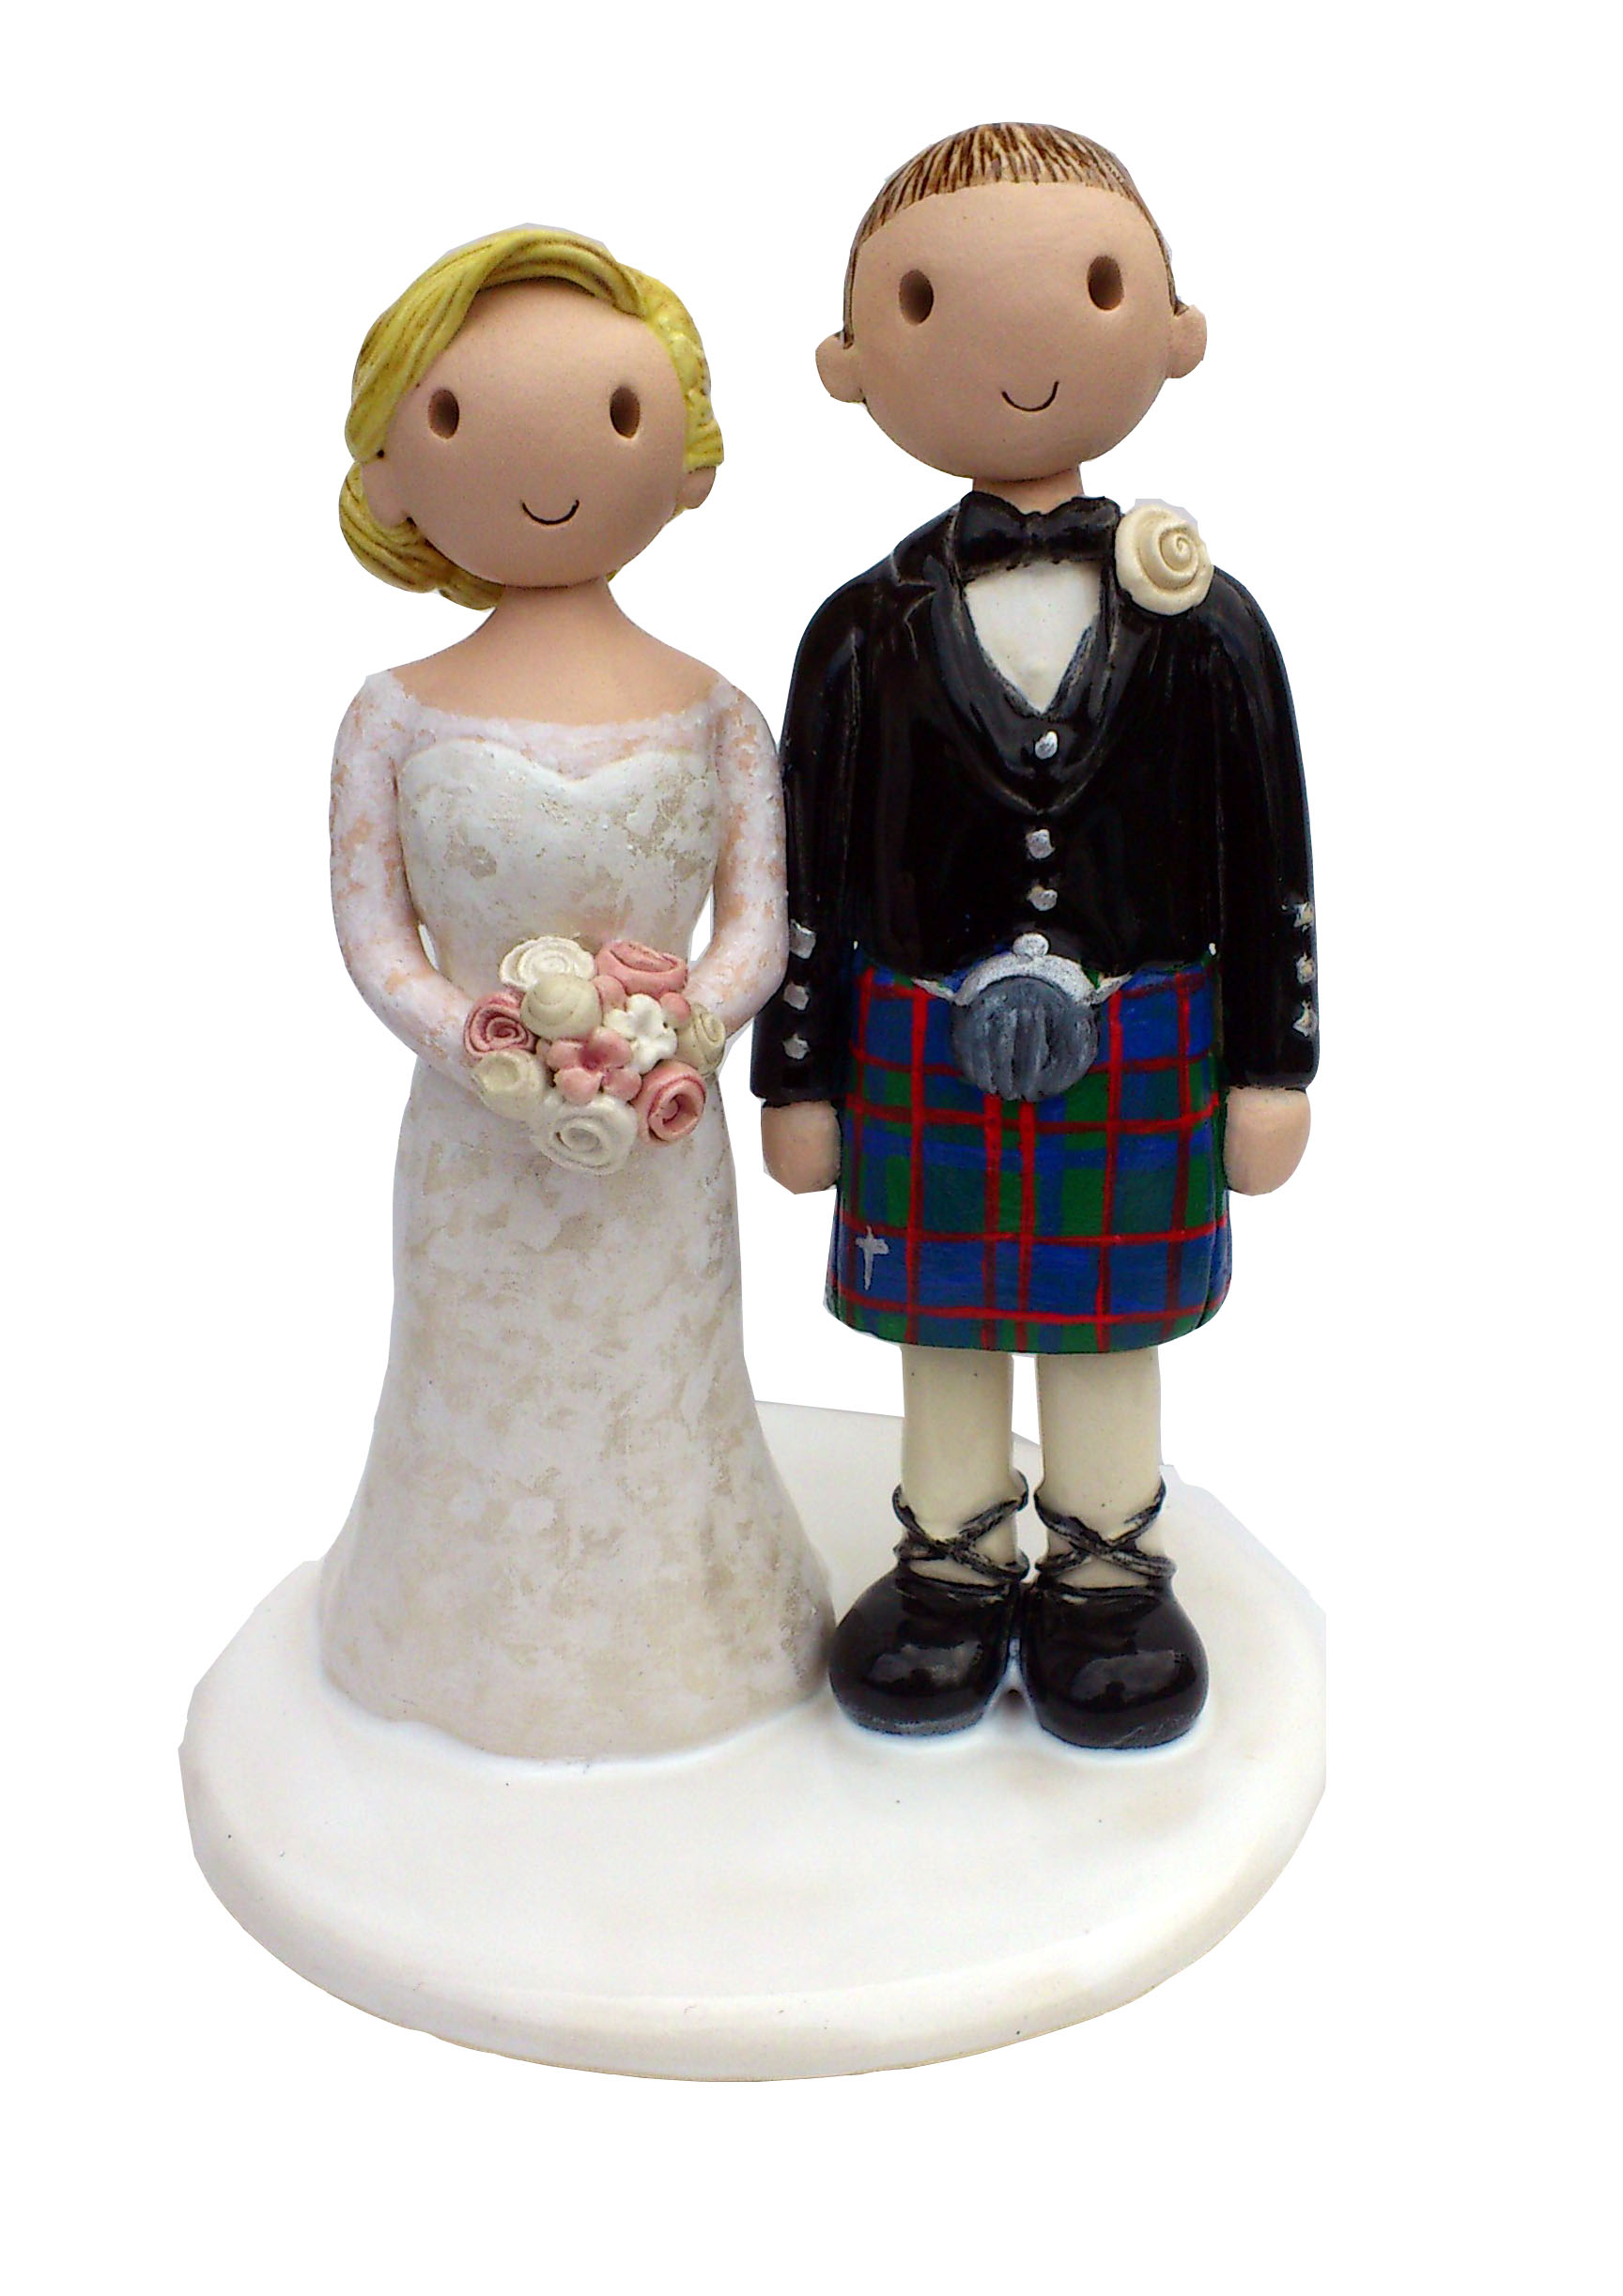 uk wedding cake toppers wedding cake toppers gallery examples of toppers we 21410